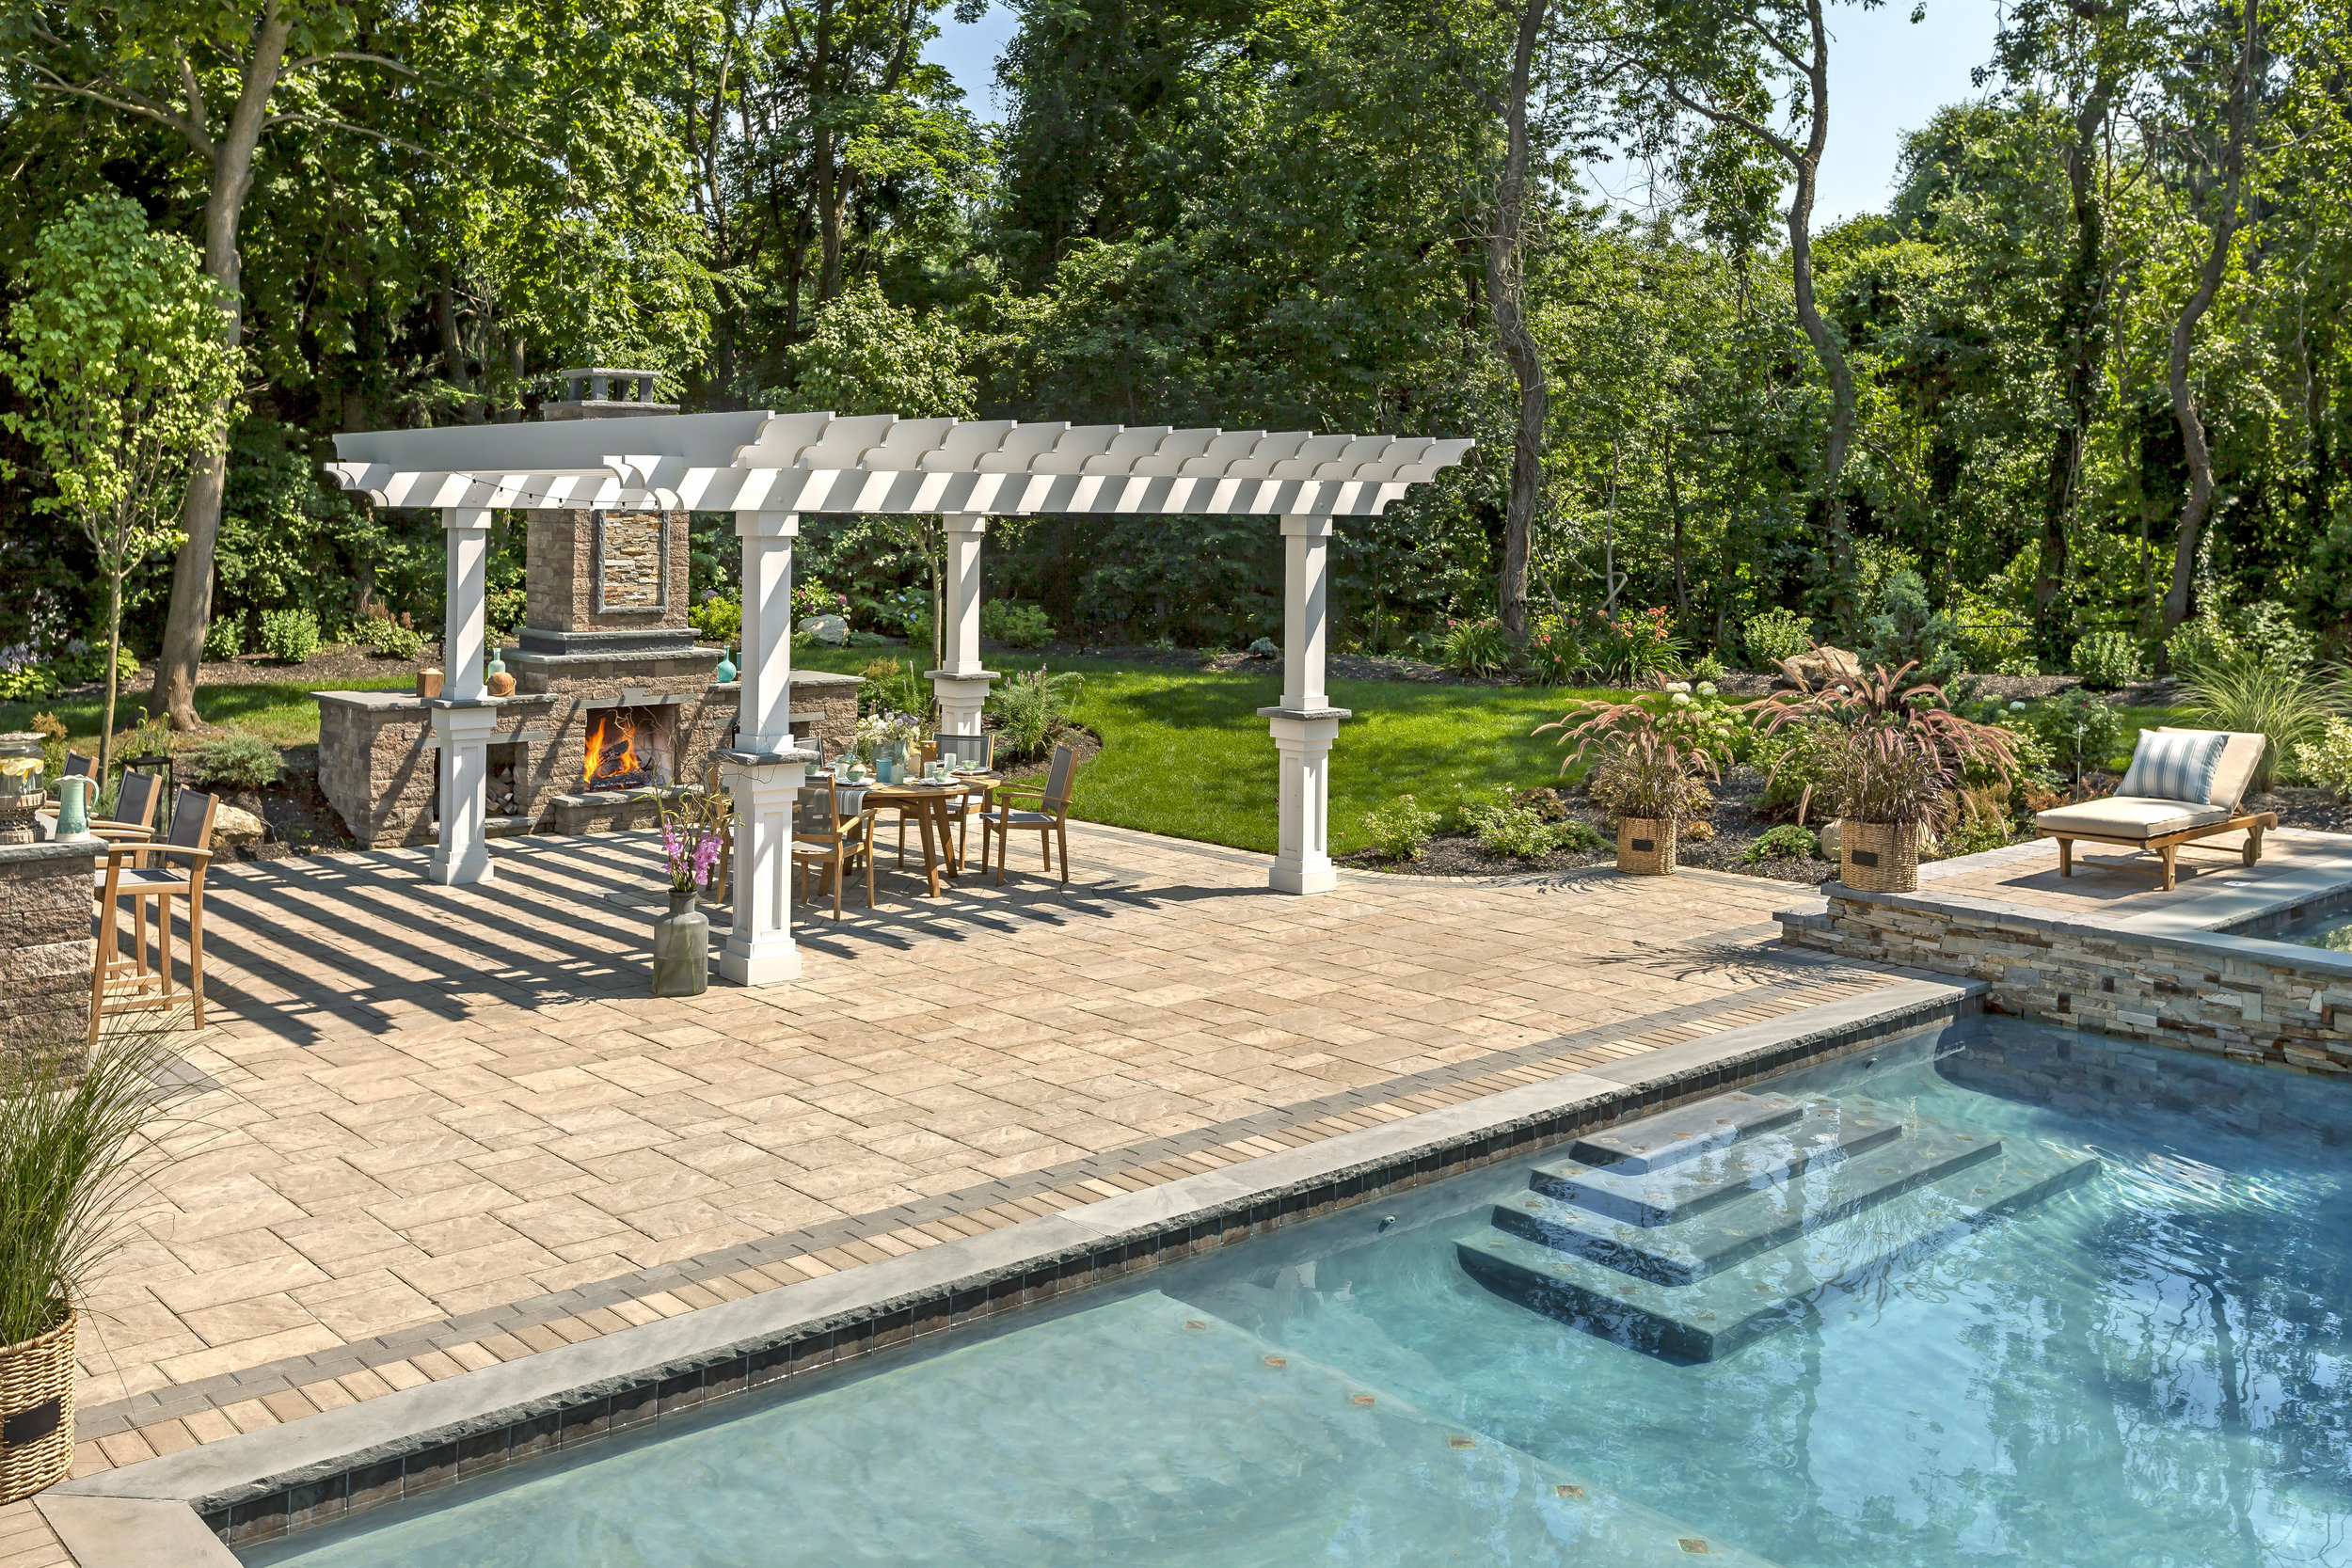 Landscape Design, Architecture, and Construction in Brookhaven, NY